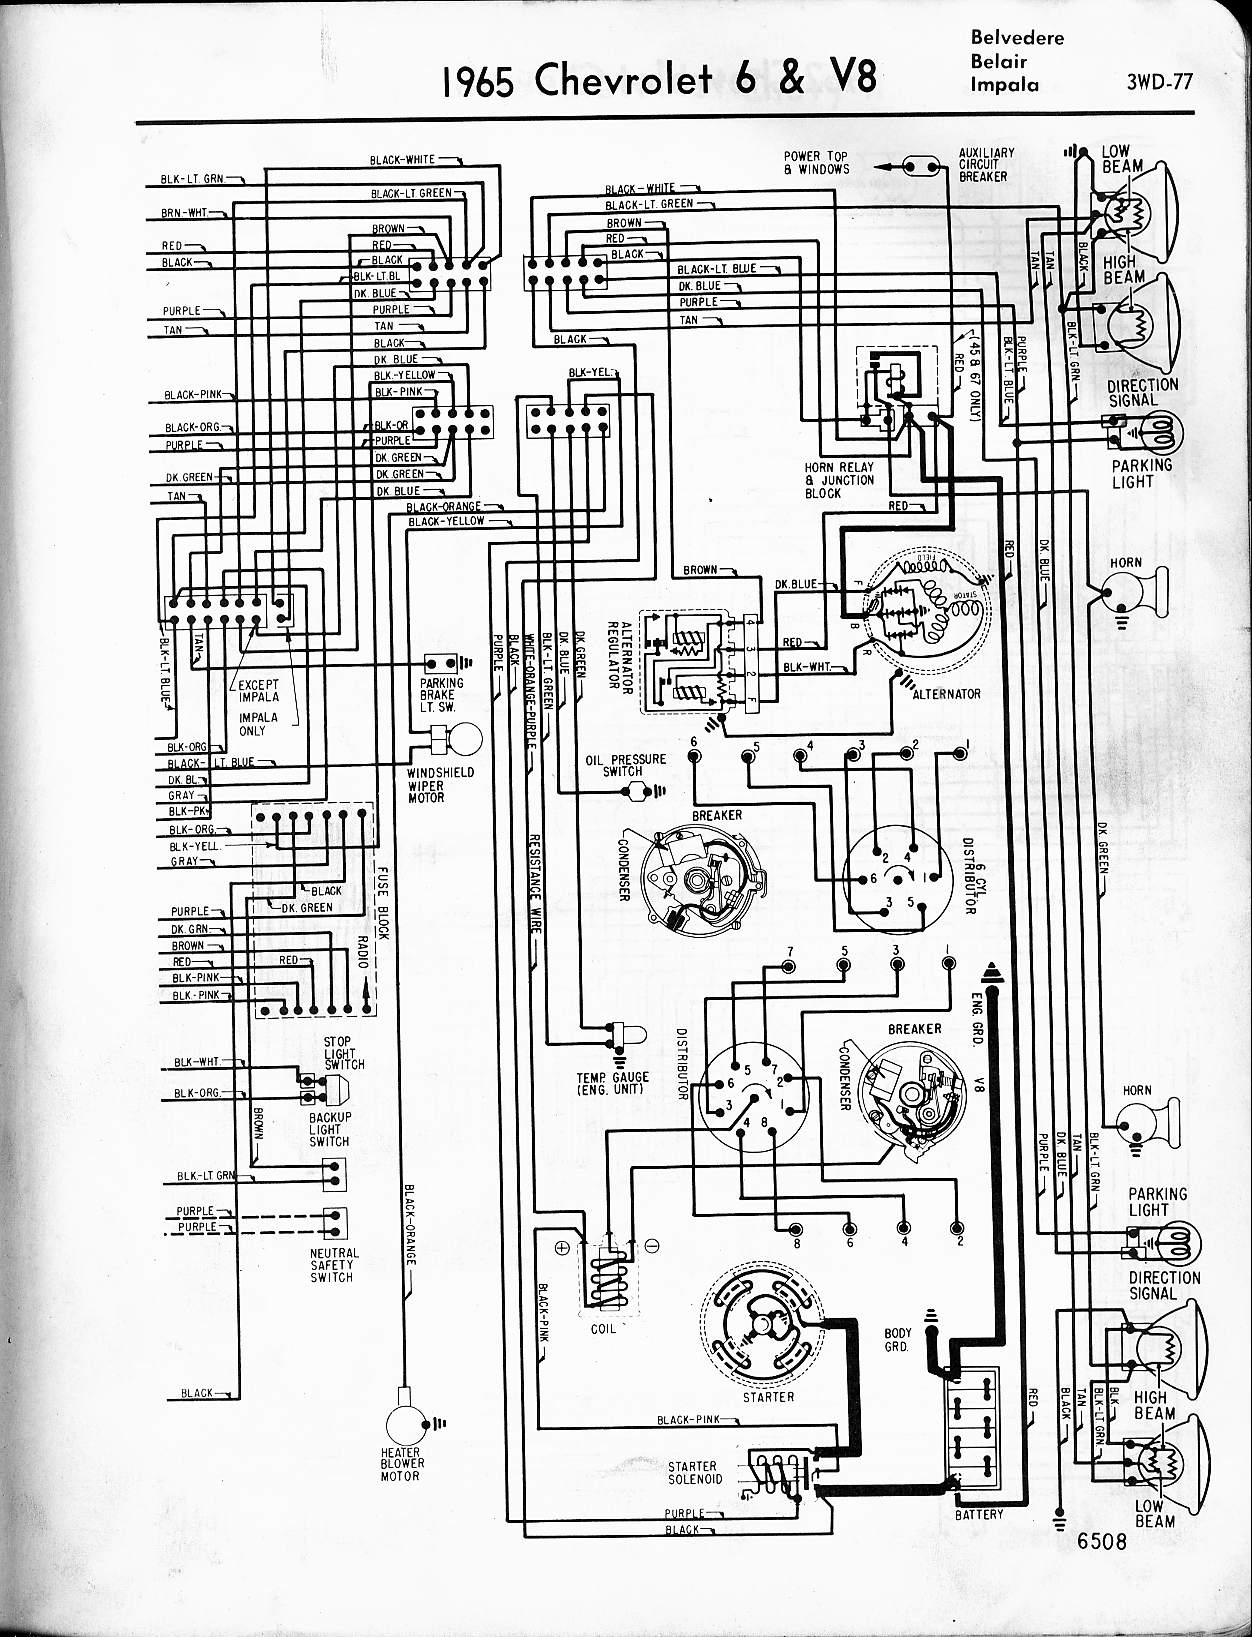 MWireChev65_3WD 077 chevy diagrams 1972 chevy impala wiring diagram at webbmarketing.co